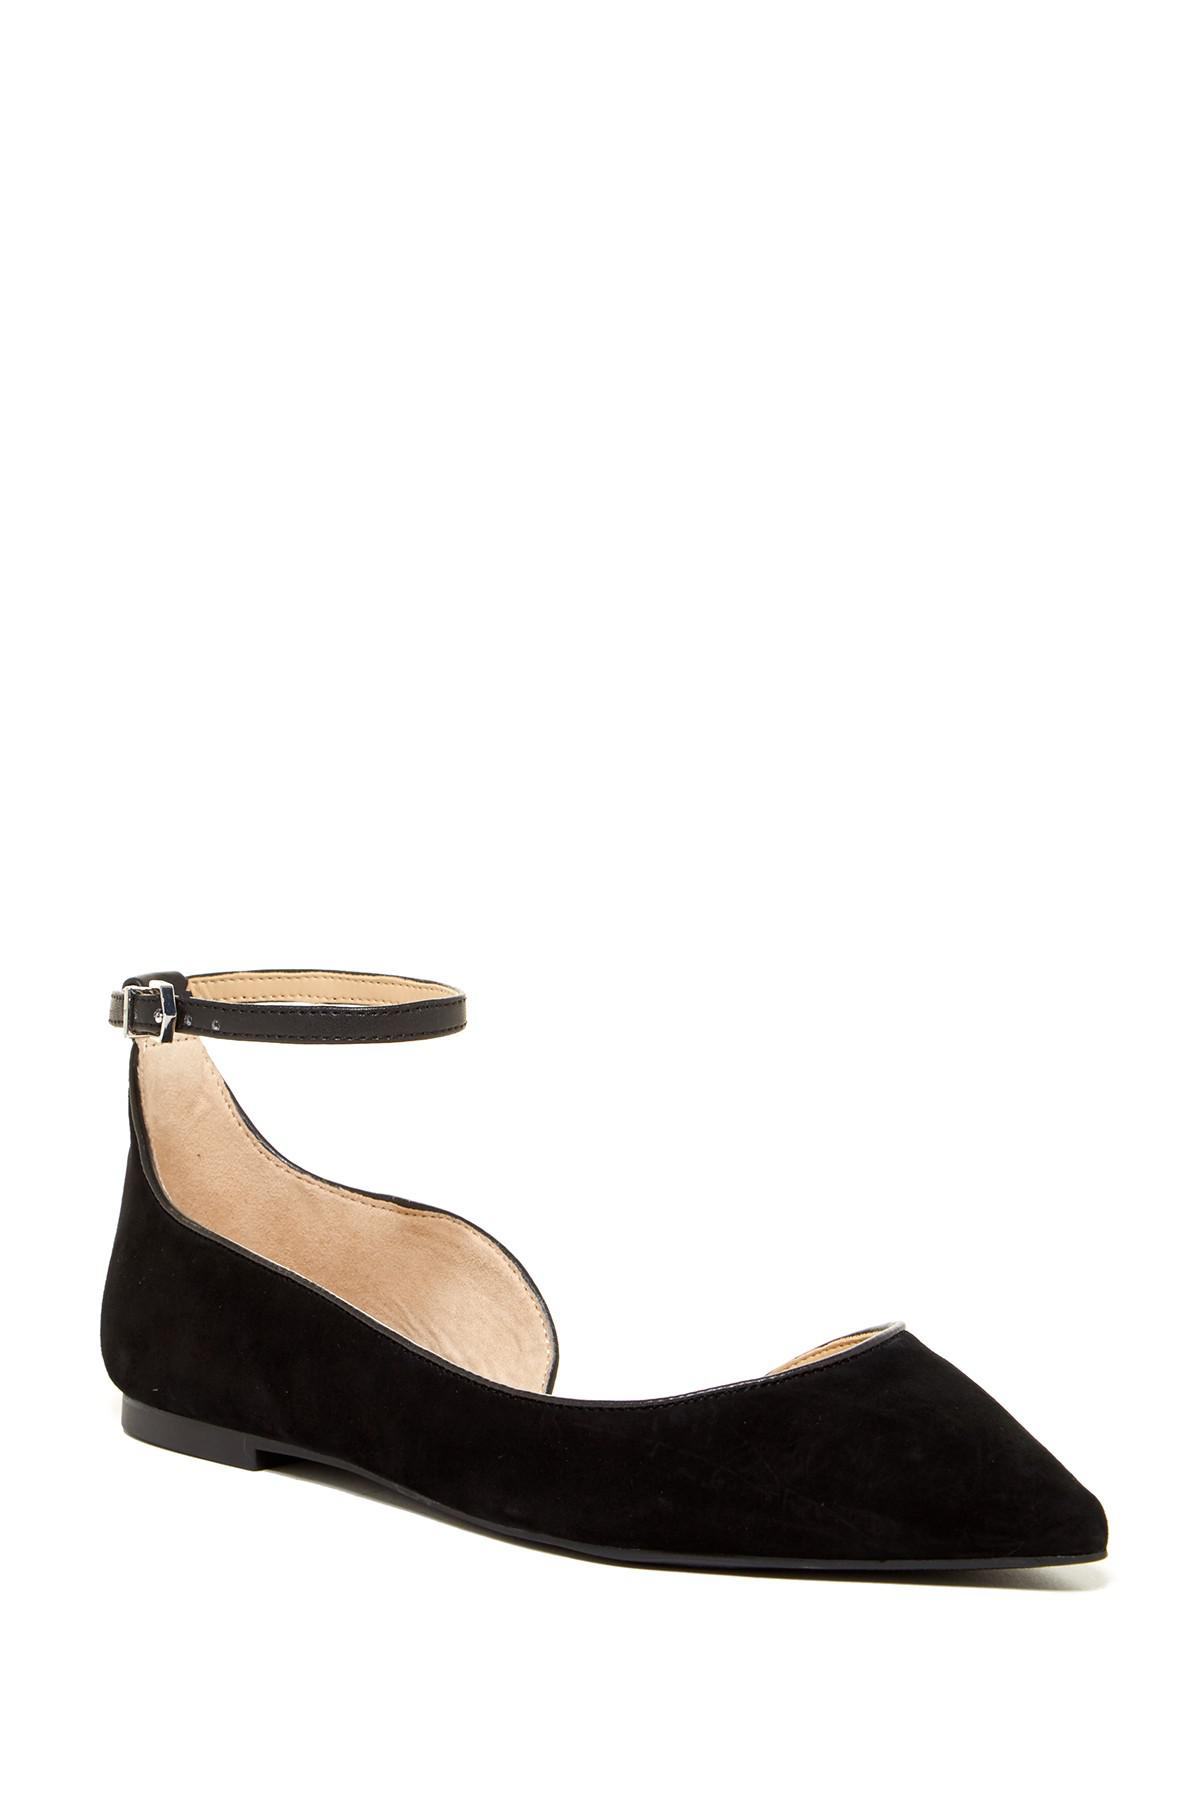 Sam Edelman Roni Studded Leather Half d'Orsay Flat